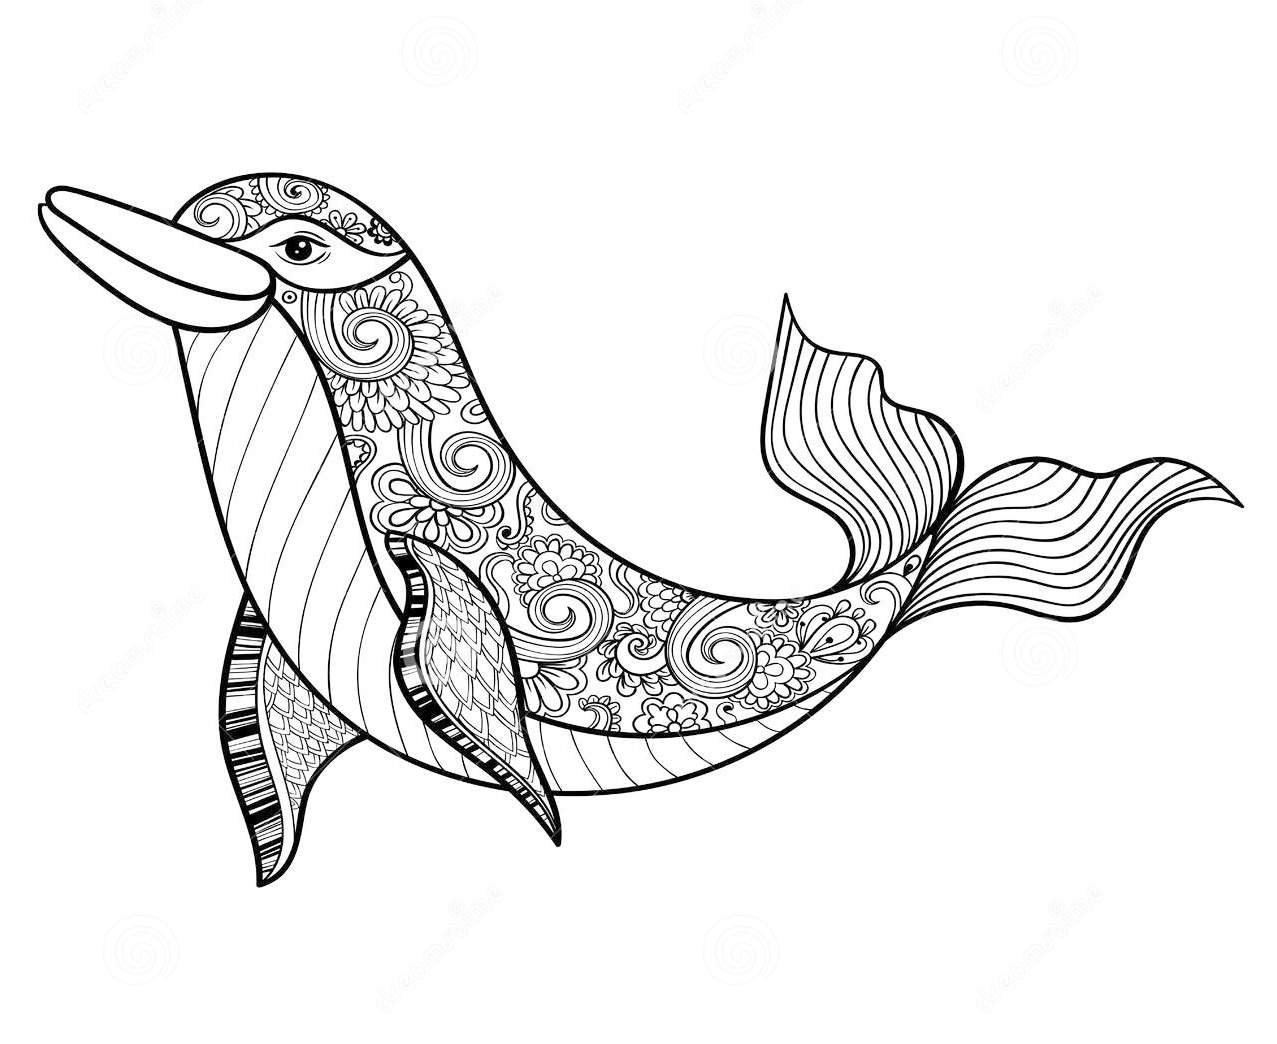 zentangle-dolphin-coloring-page-to-relieve-stress